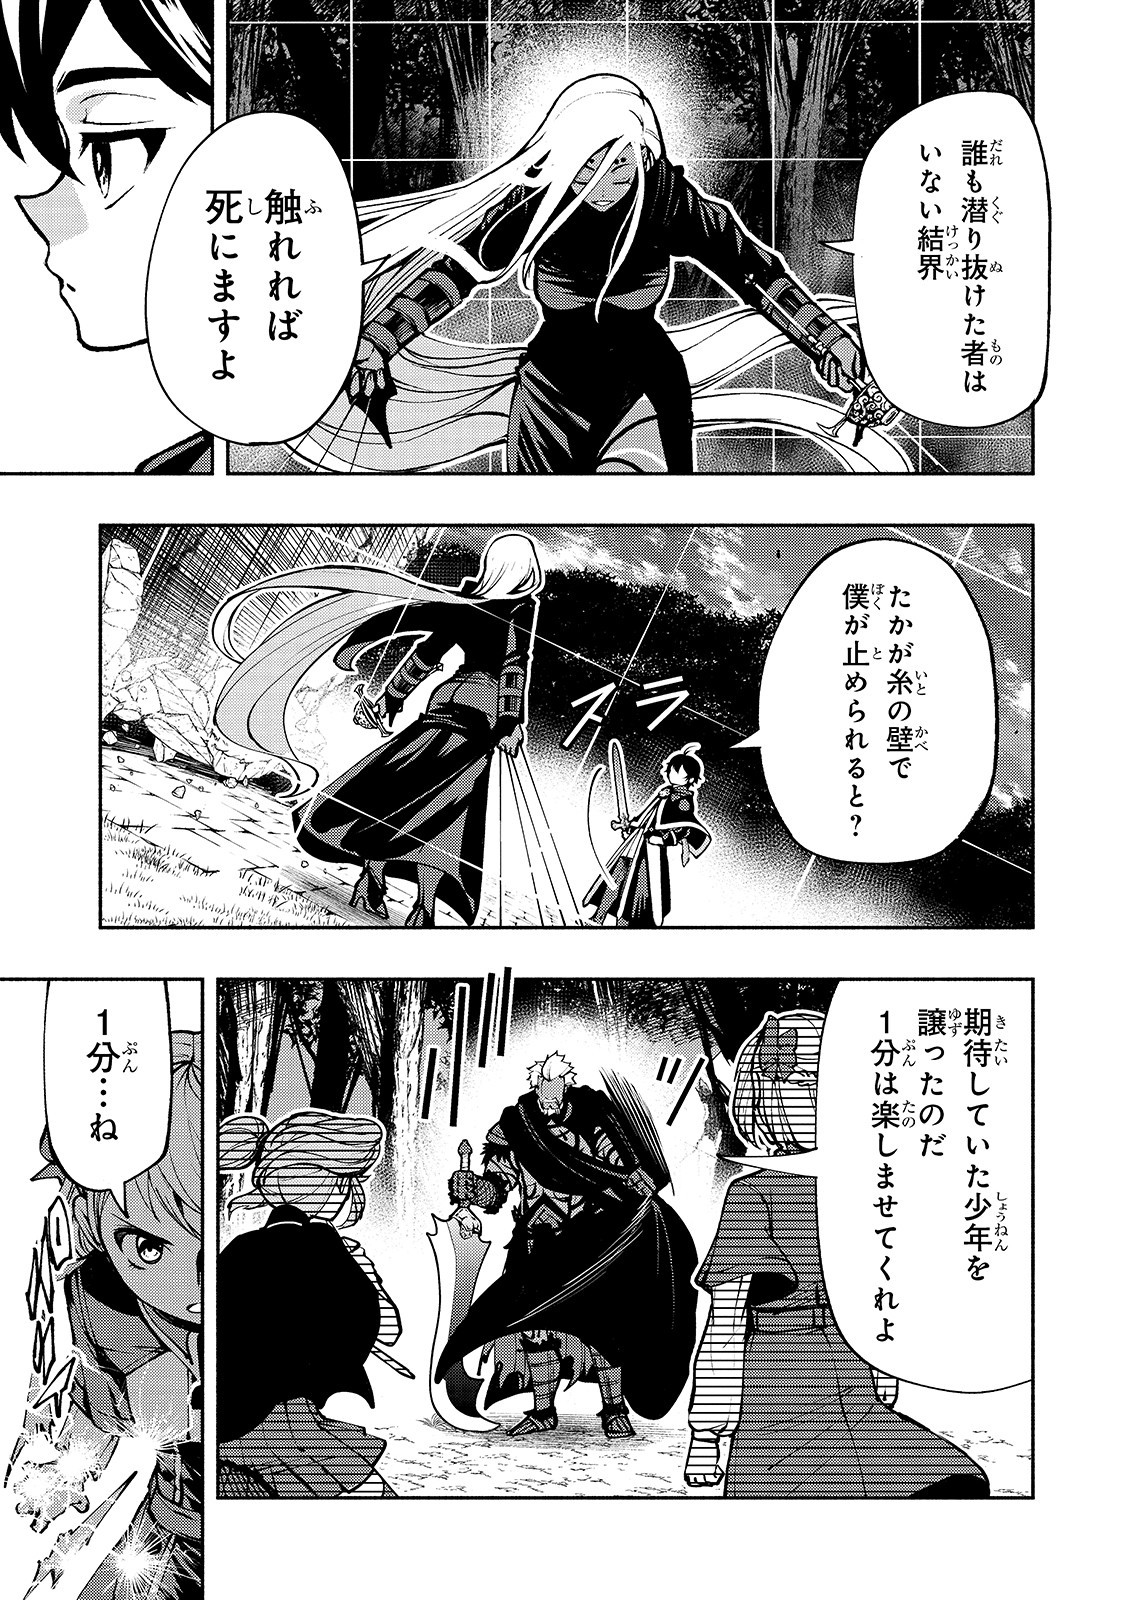 Manga Raw The Master Swordsman Who Was Reincarnated Wants to Live Freely Manga Chapter 15